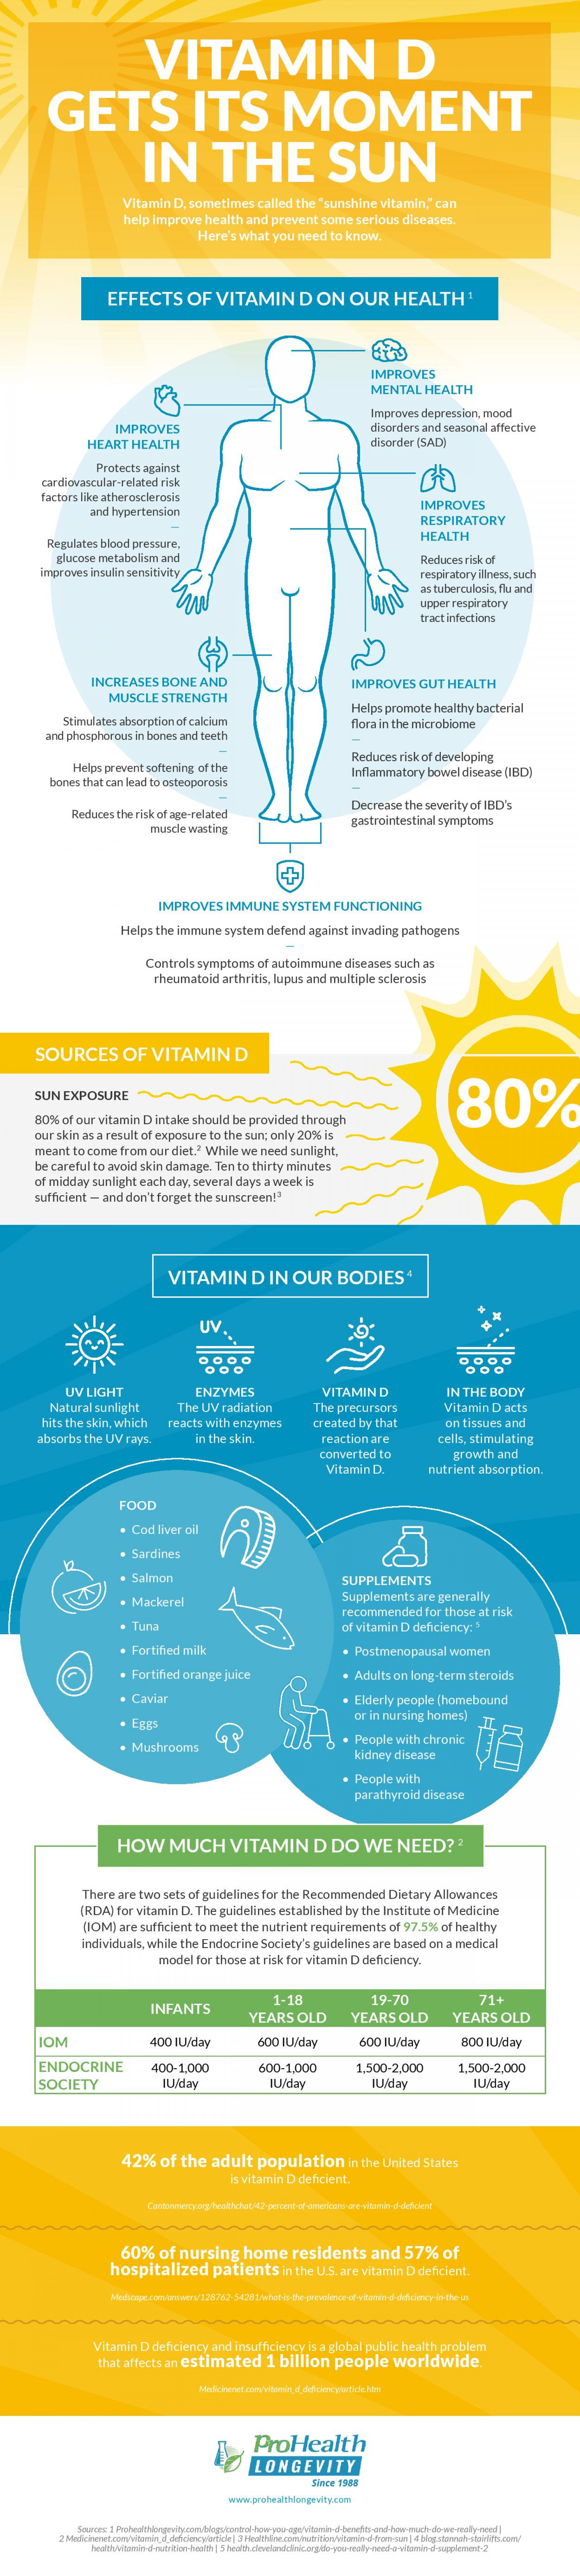 Vitamin D Get Its Moment In The Sun Infographic